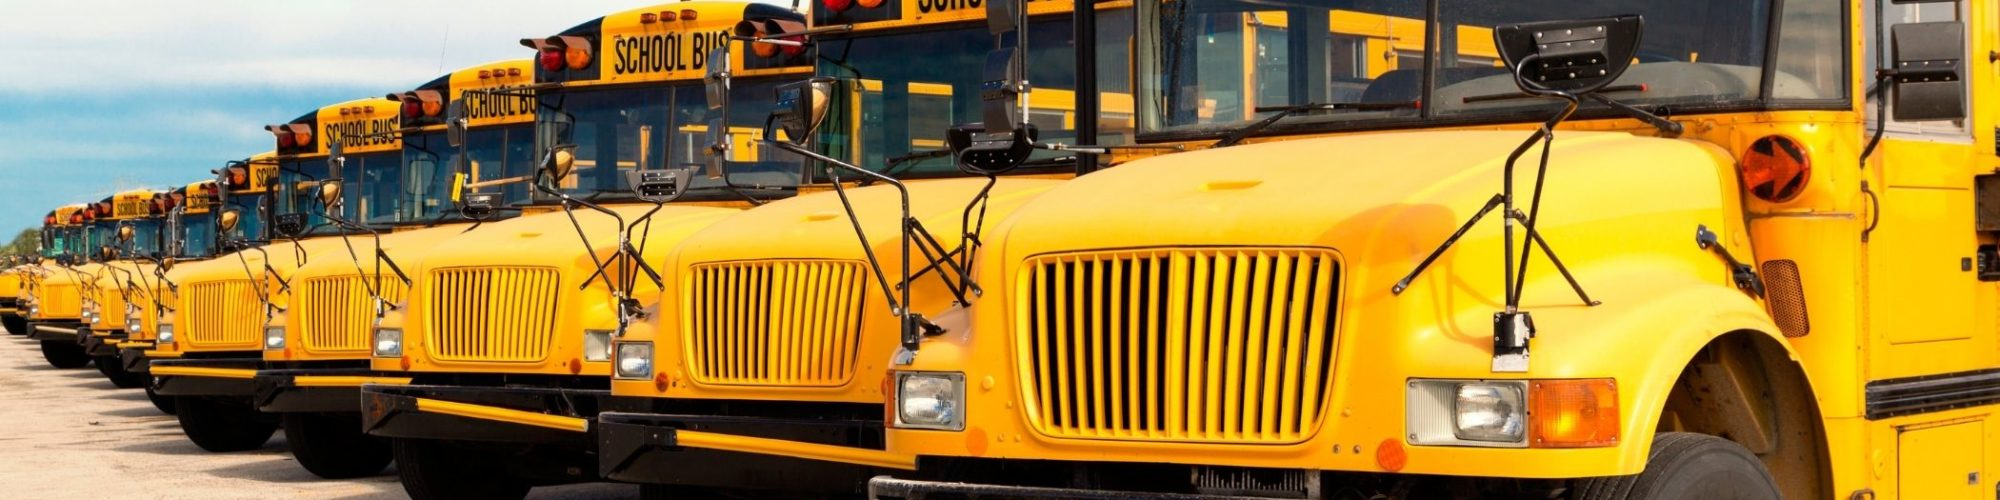 School buses parked